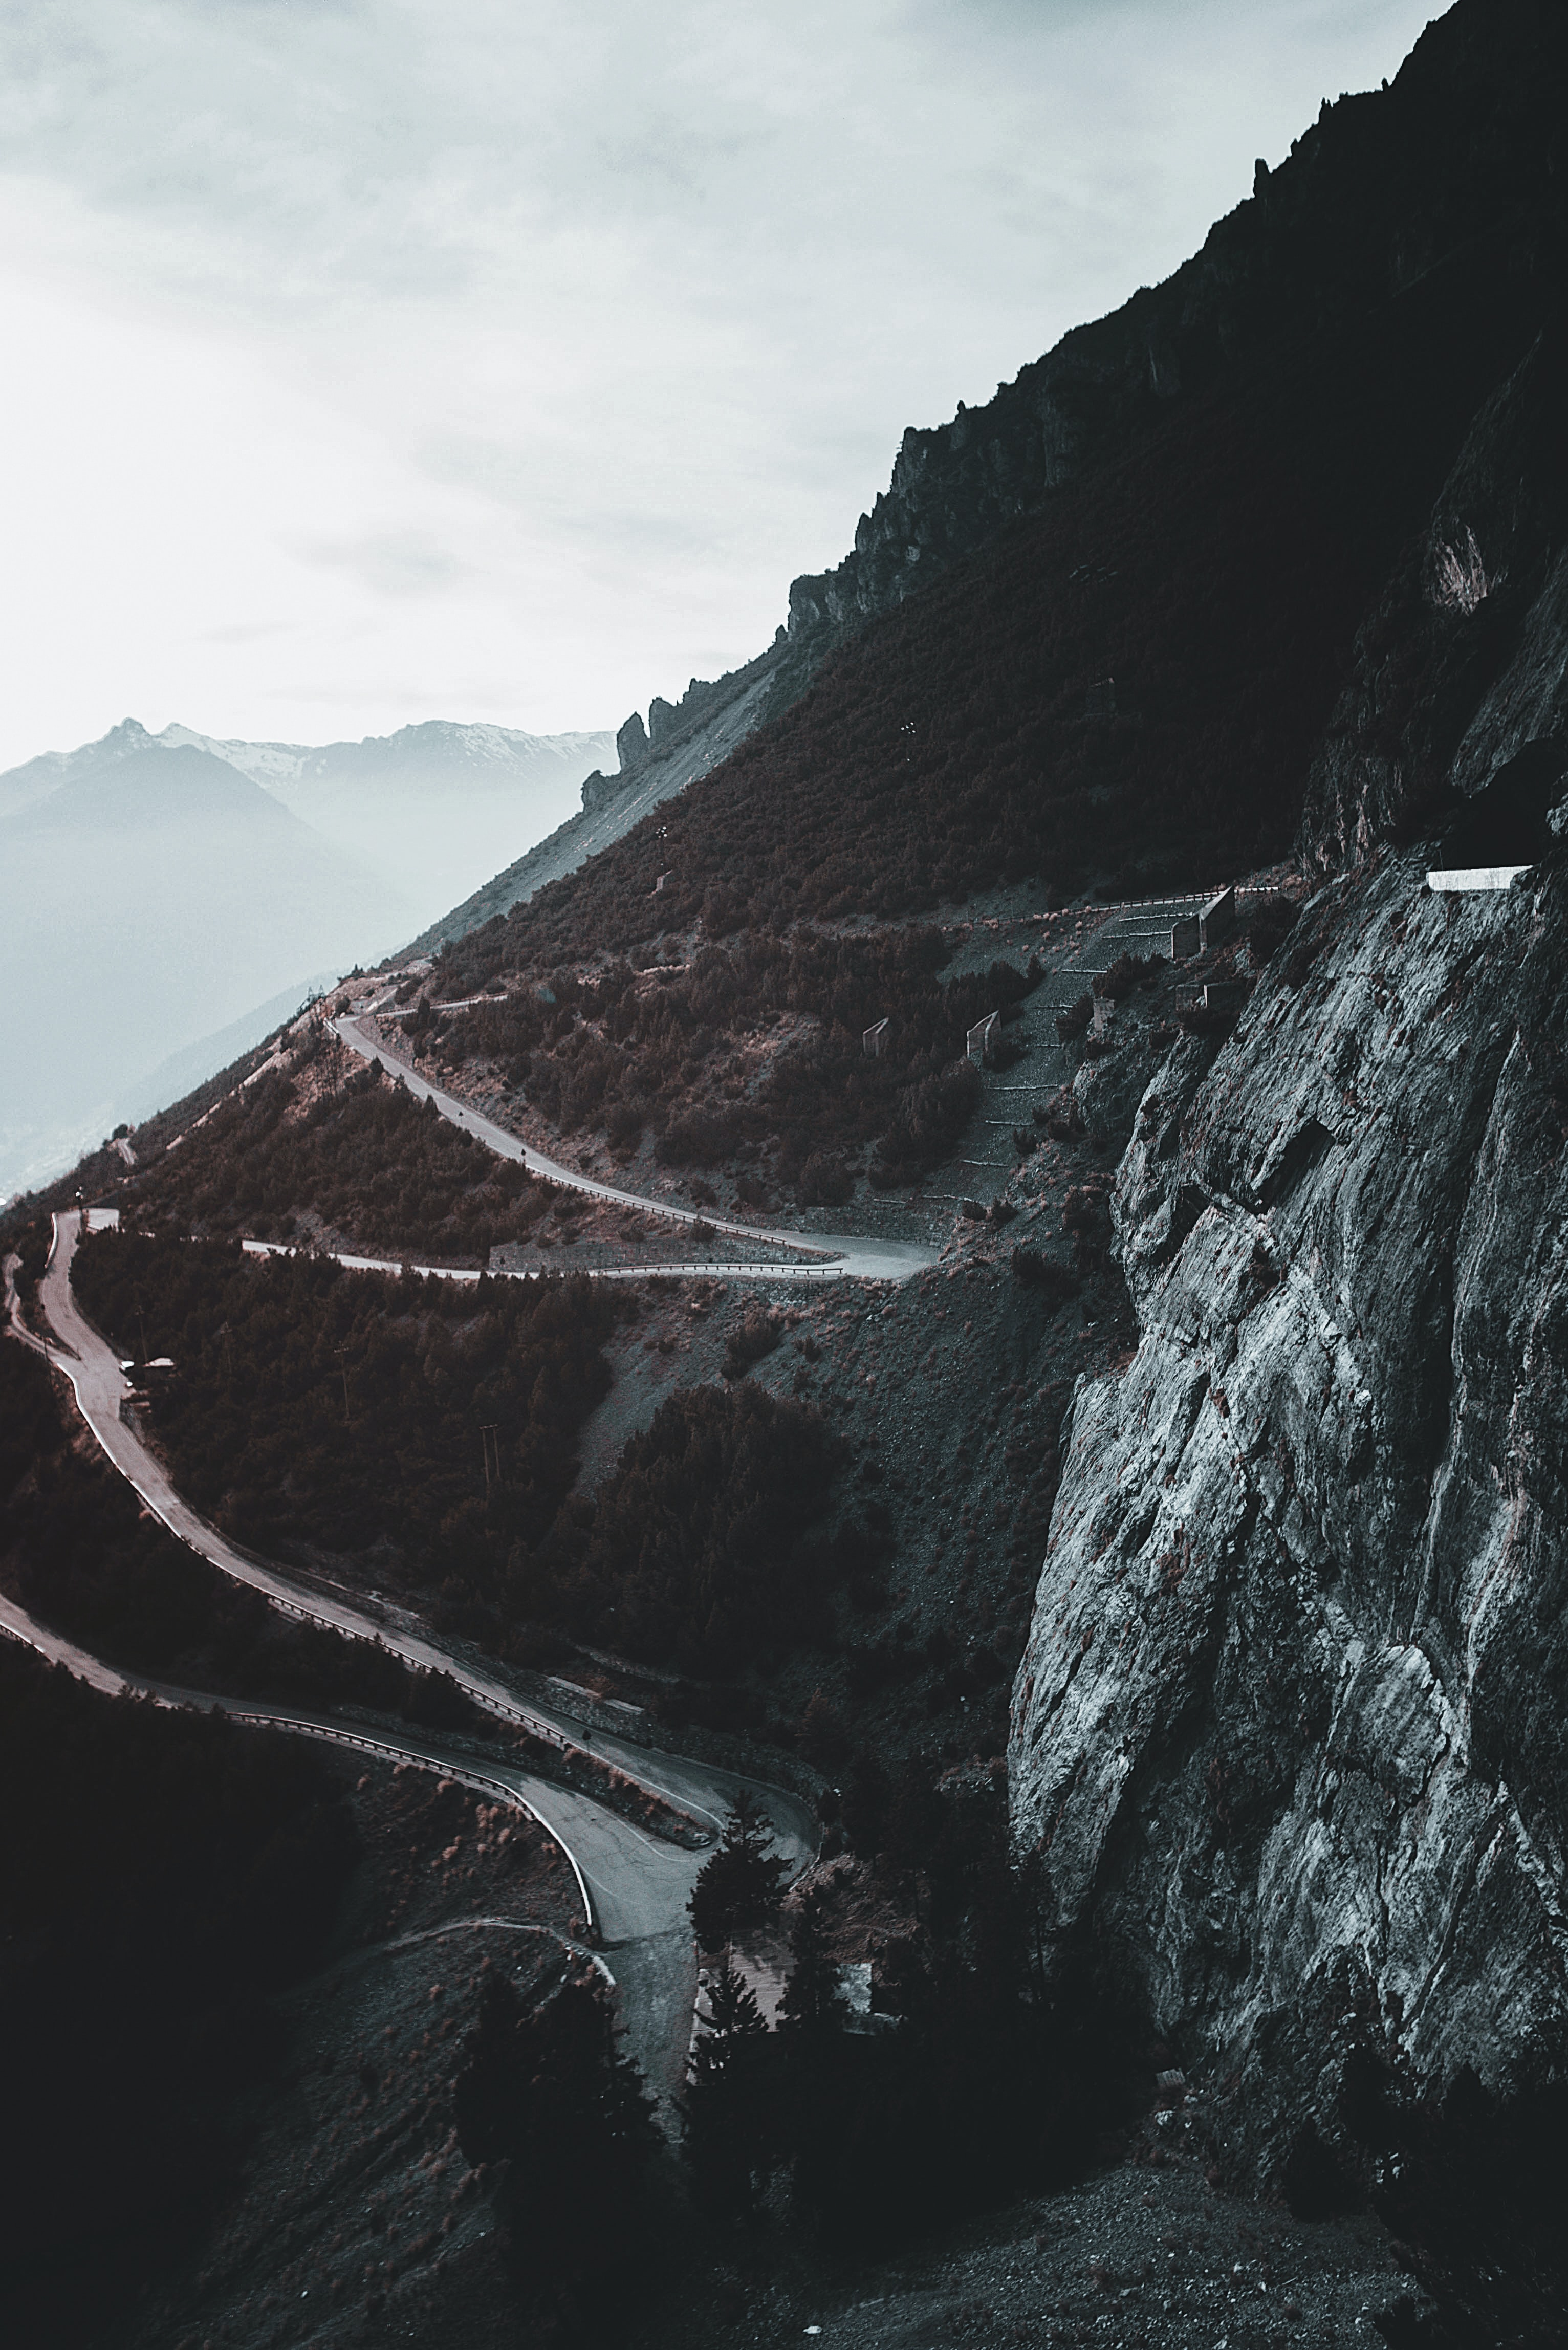 landscape photography of zig zag road on mountain